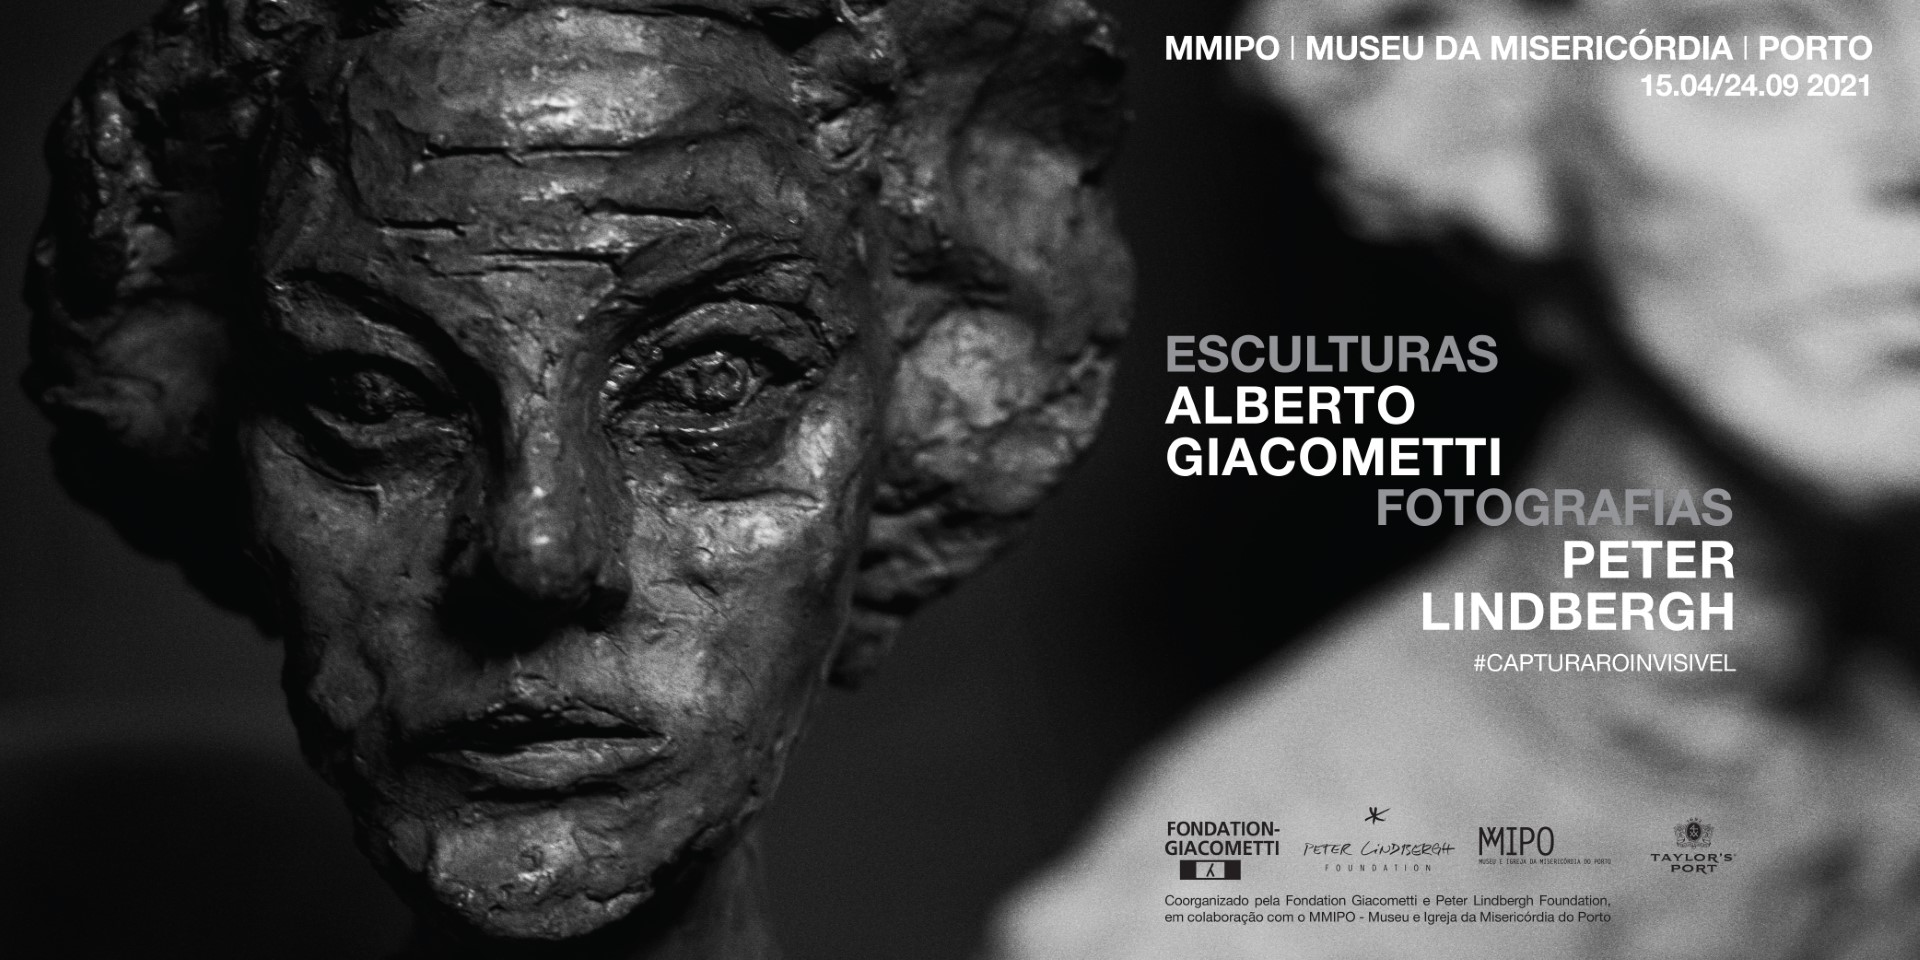 https://www.scmp.pt/assets/misc/BANNERS/2021/Giacometti-Linderbergh-Exhibition_Banner_Site_2021%5BAF5%5DPT.jpg